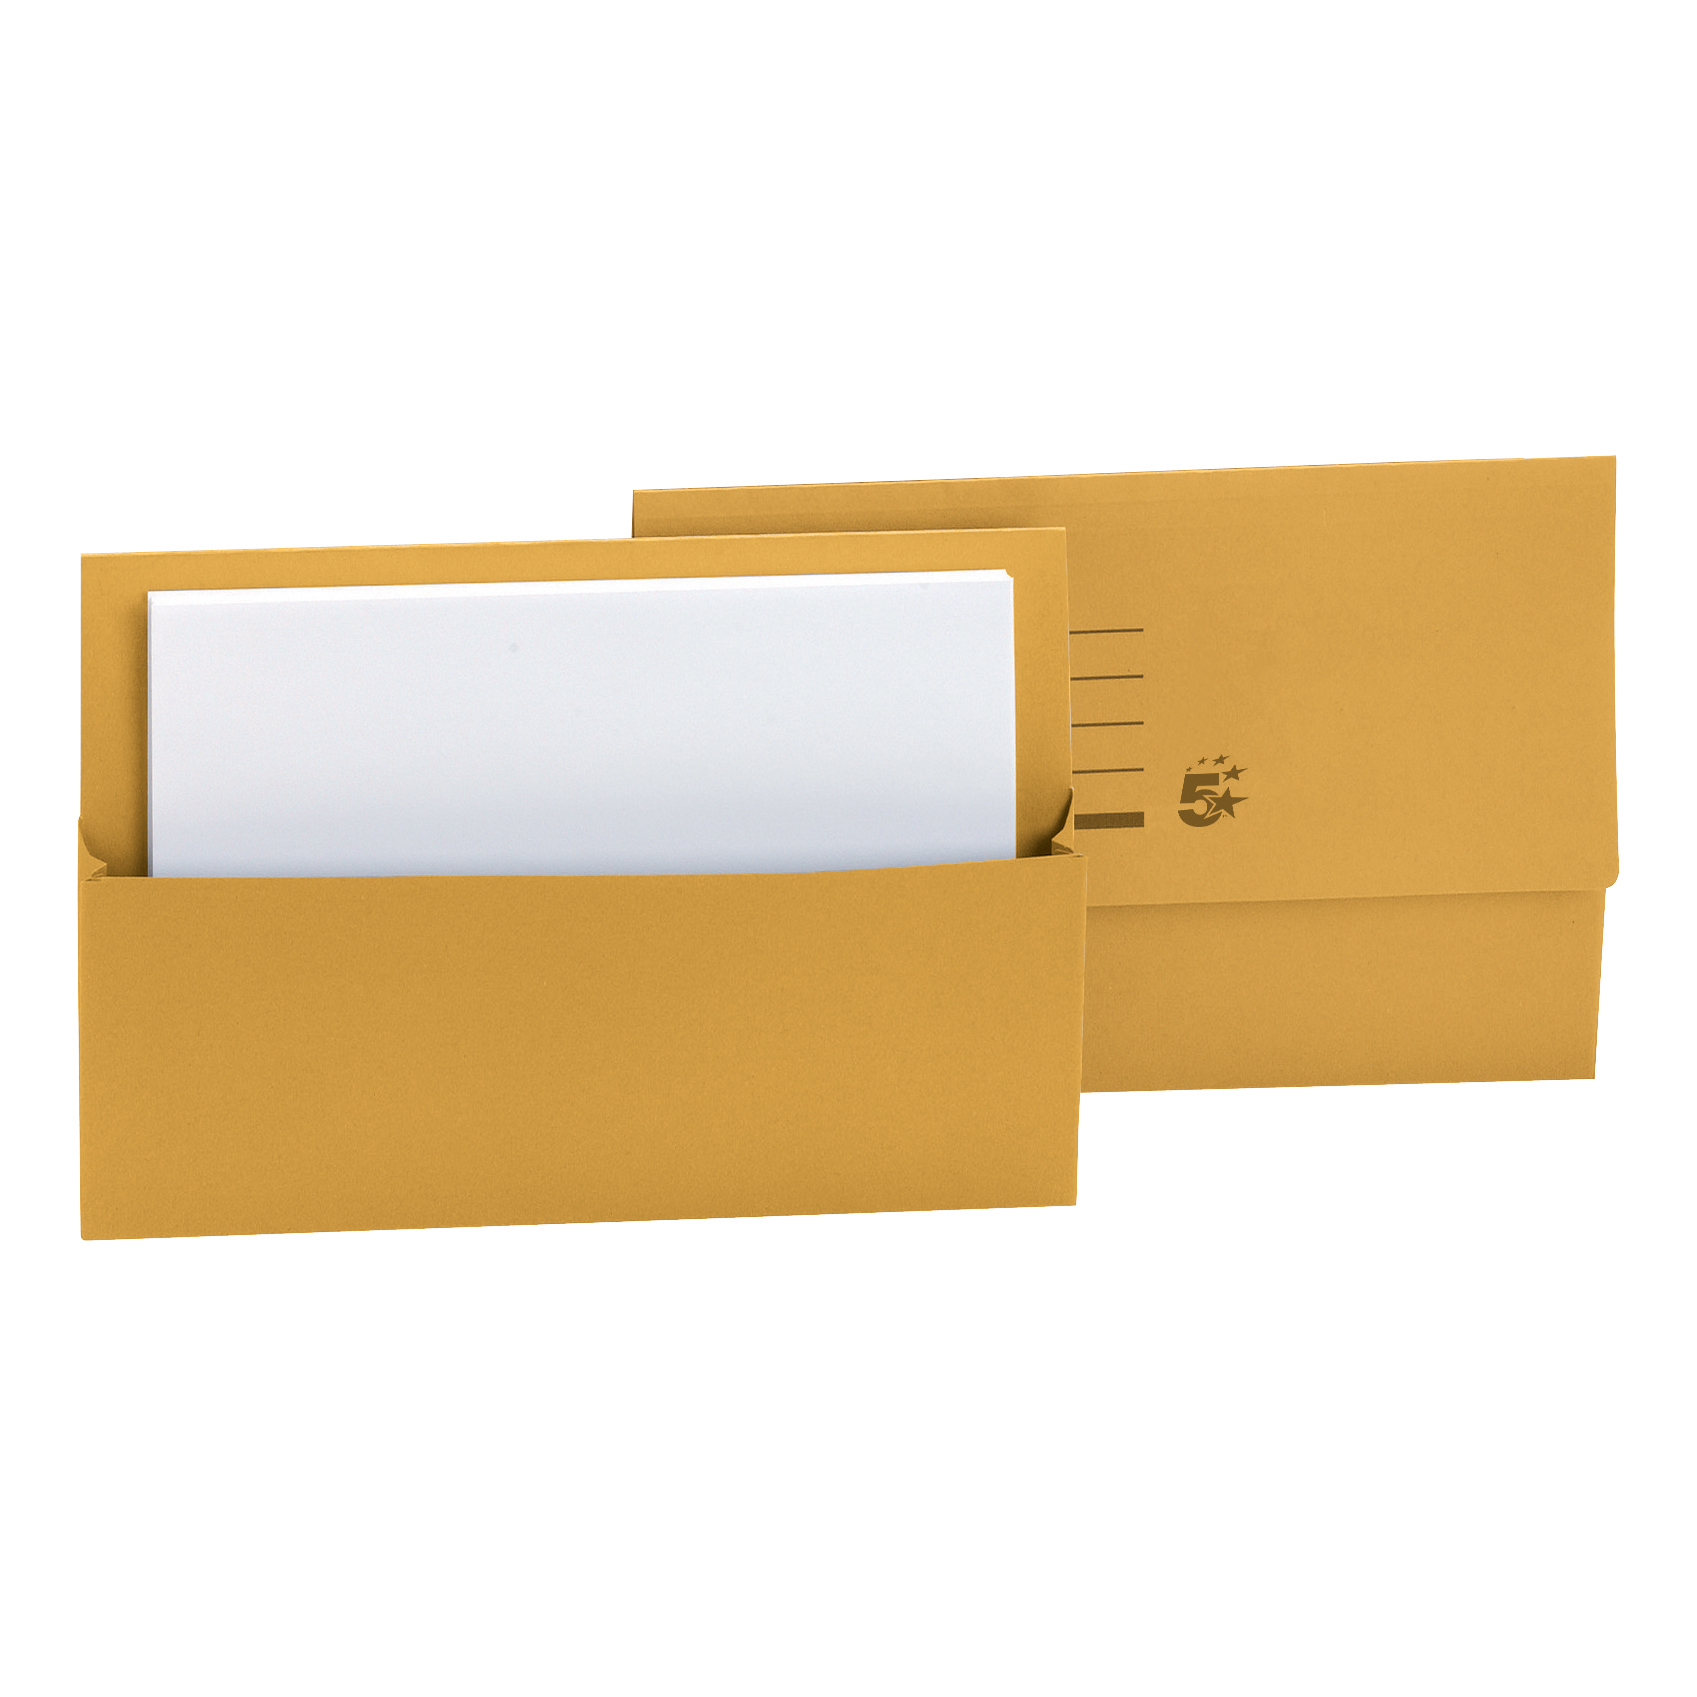 5 Star Office Document Wallet Half Flap 250gsm Recycled Capacity 32mm Foolscap Yellow Pack 50